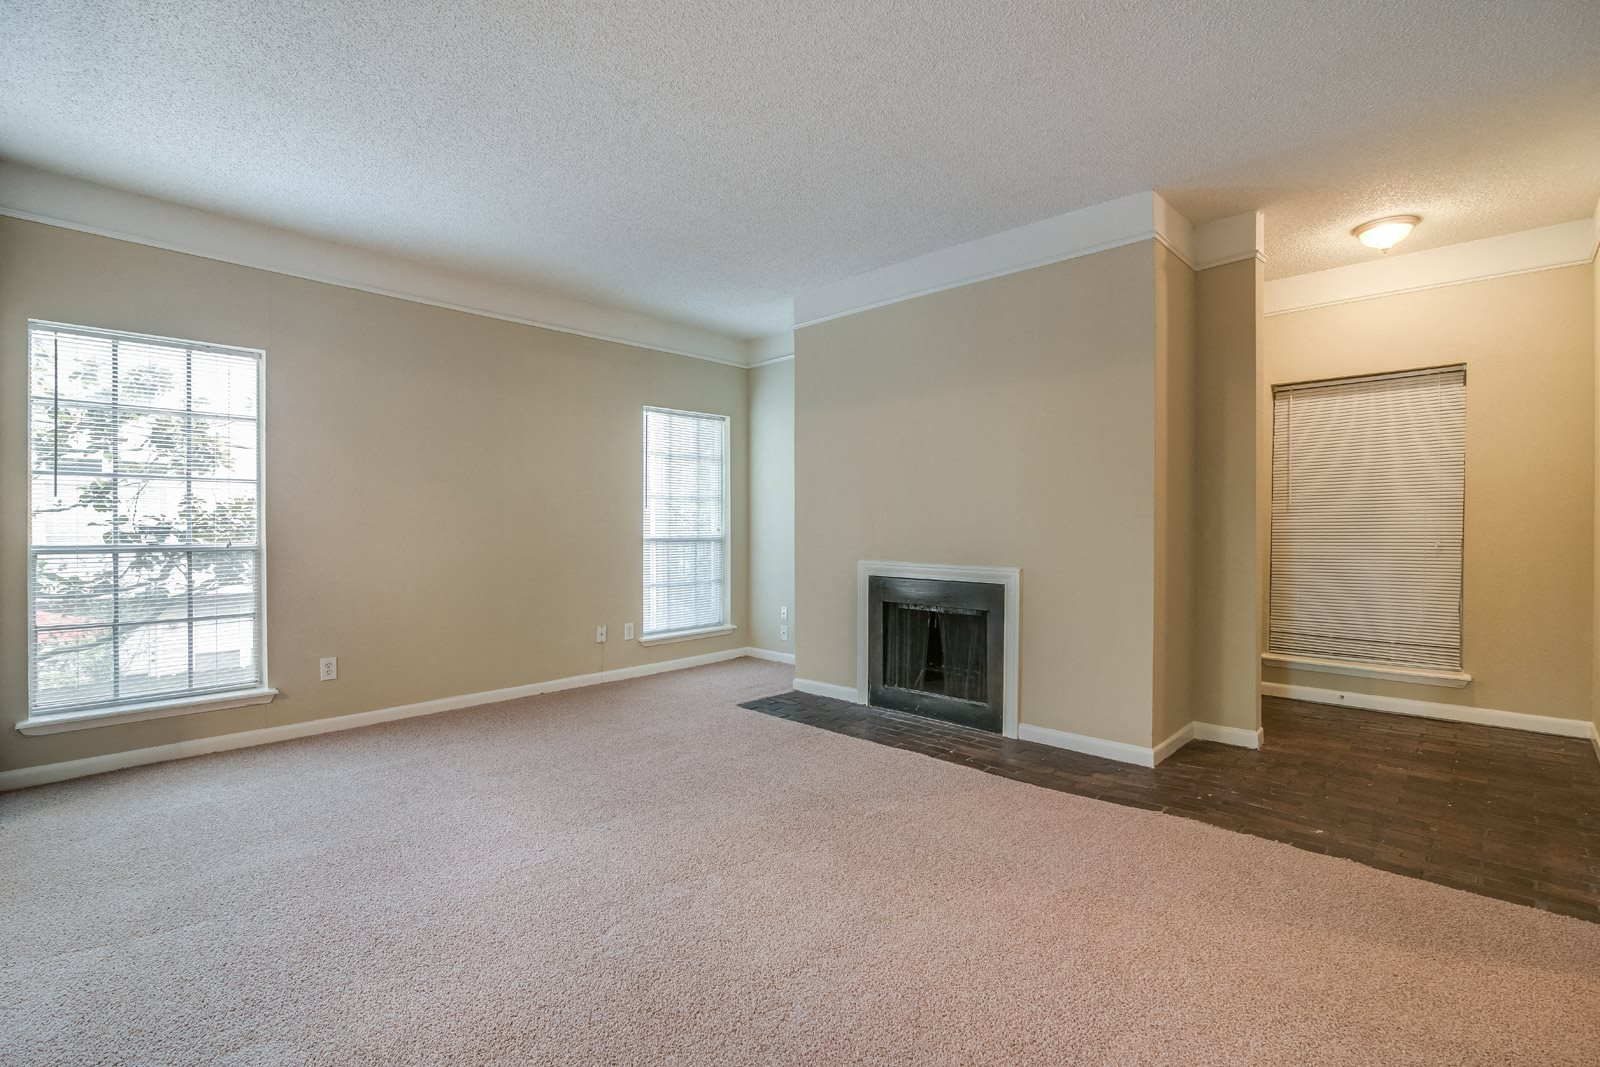 Living Room with Fireplace at Allen House Apartments, 77019, Texas